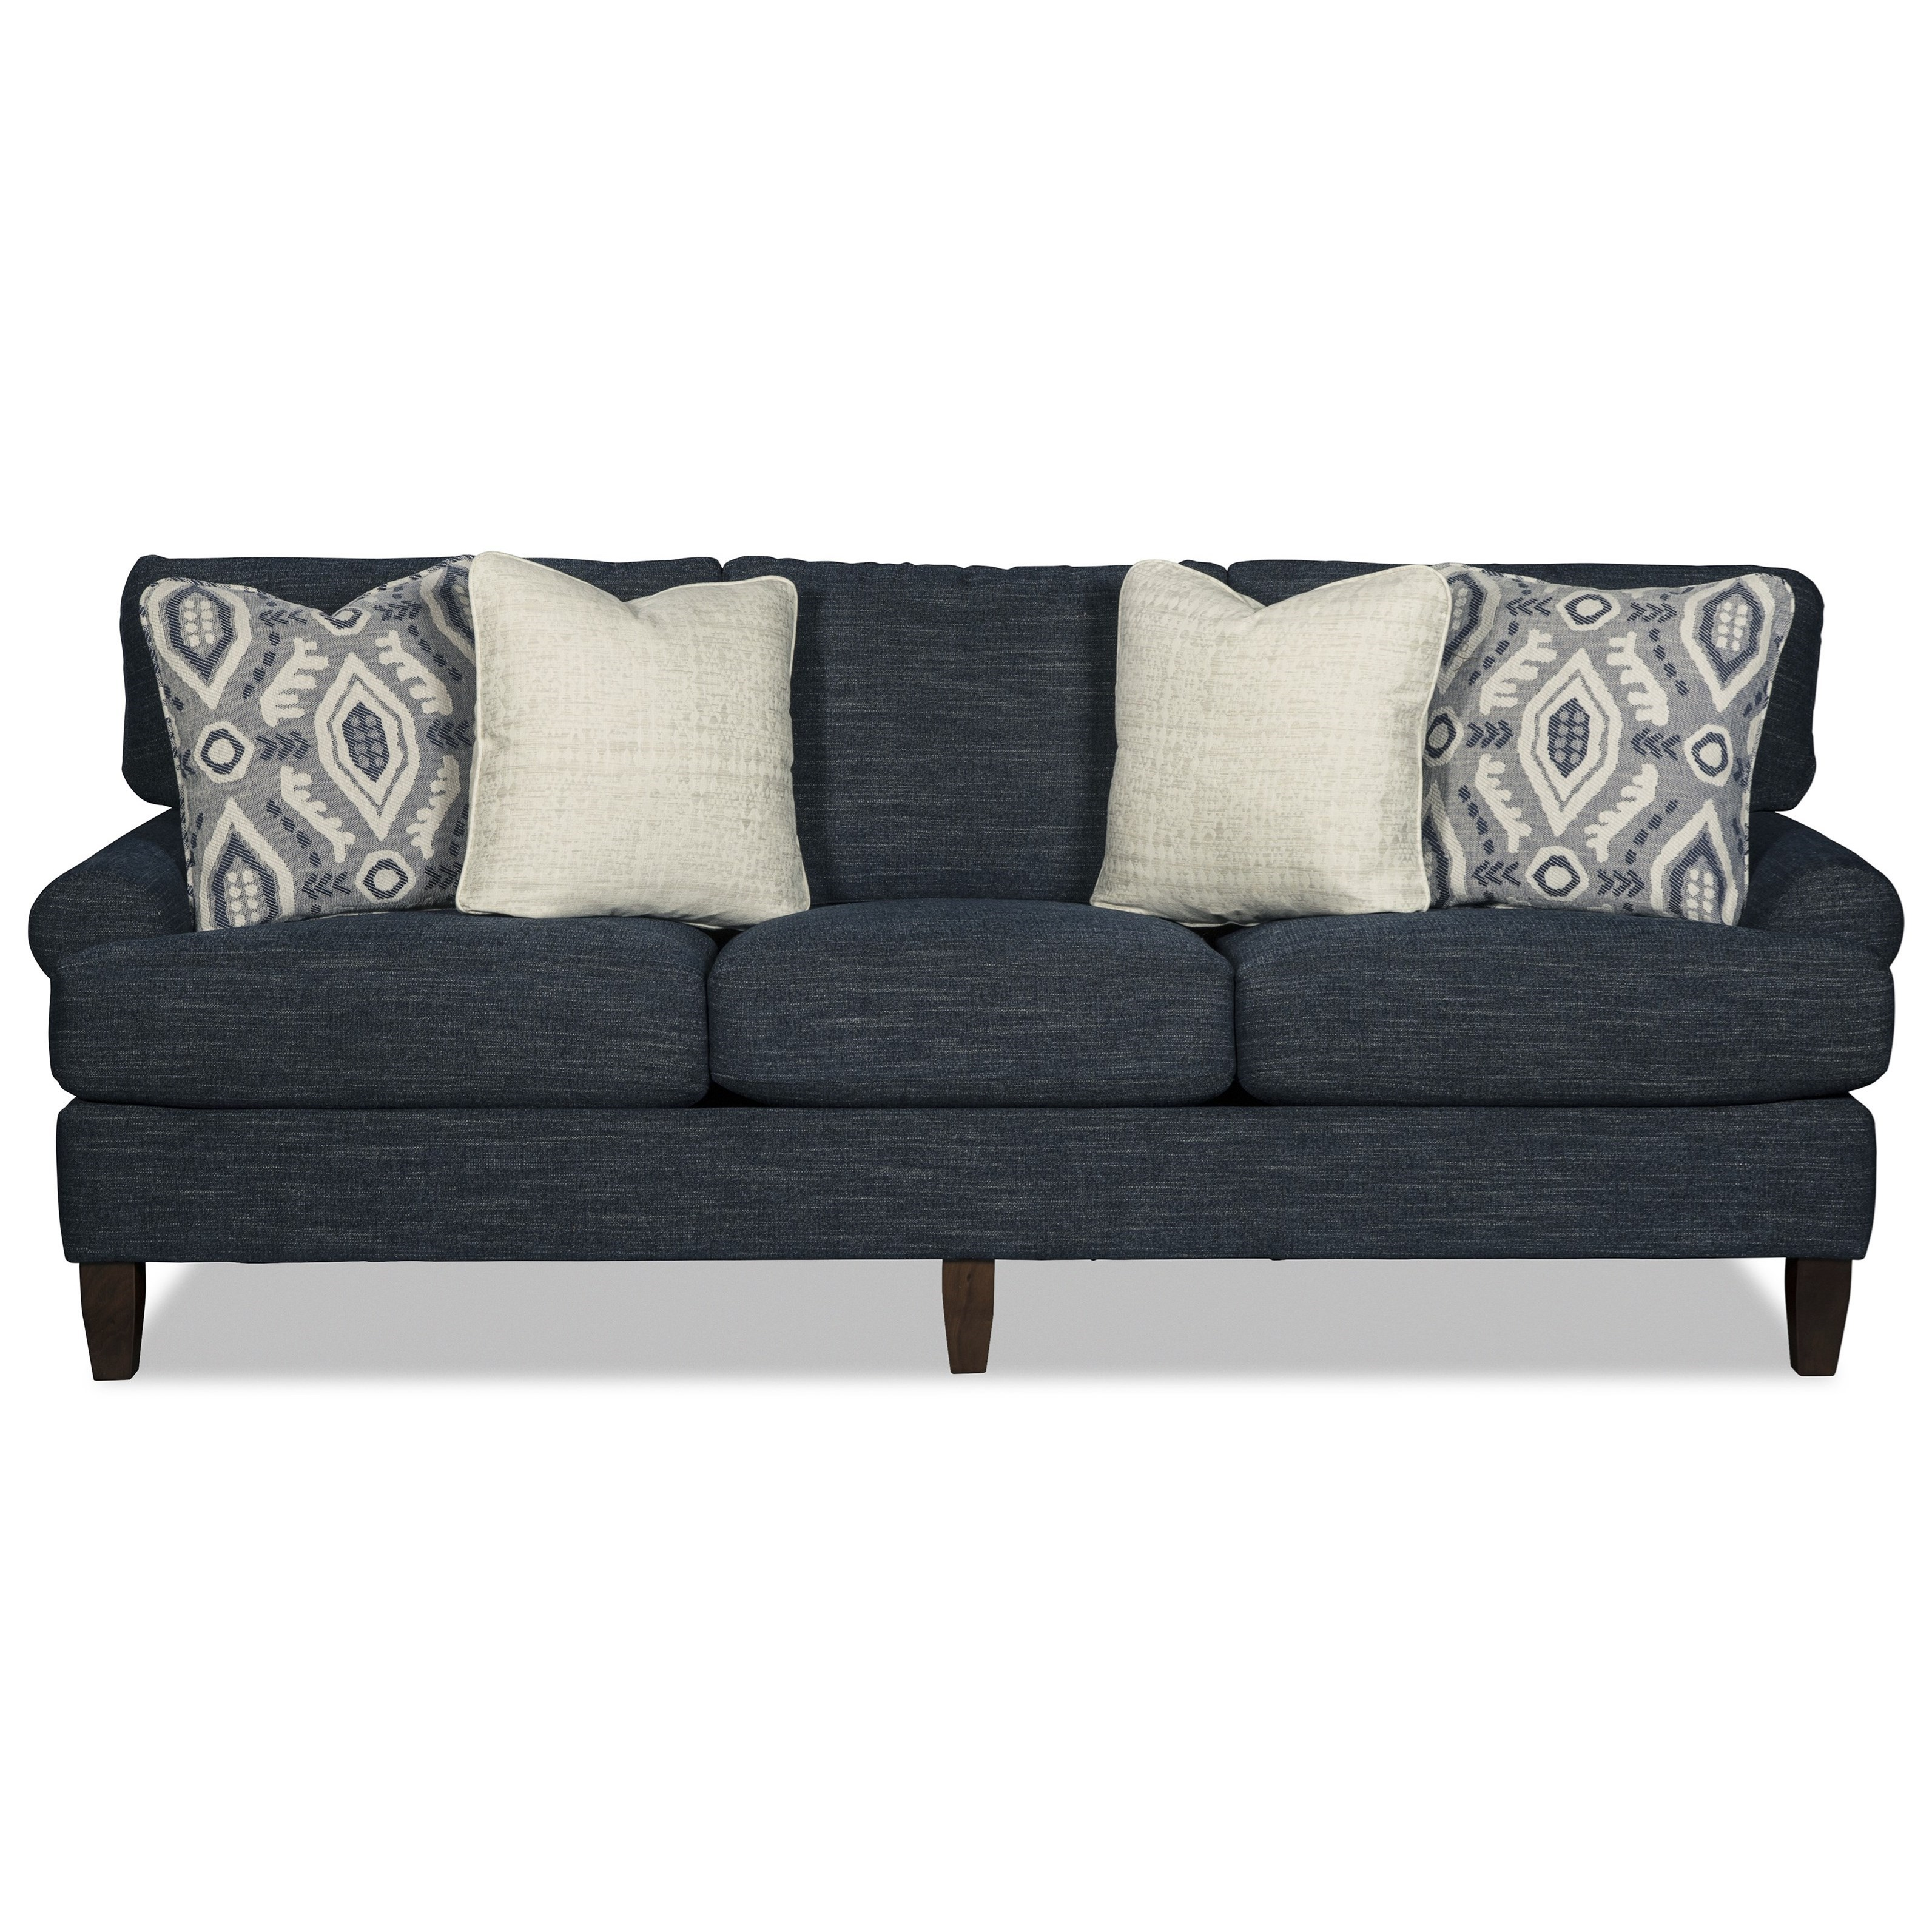 701350 Sofa by Craftmaster at Belfort Furniture